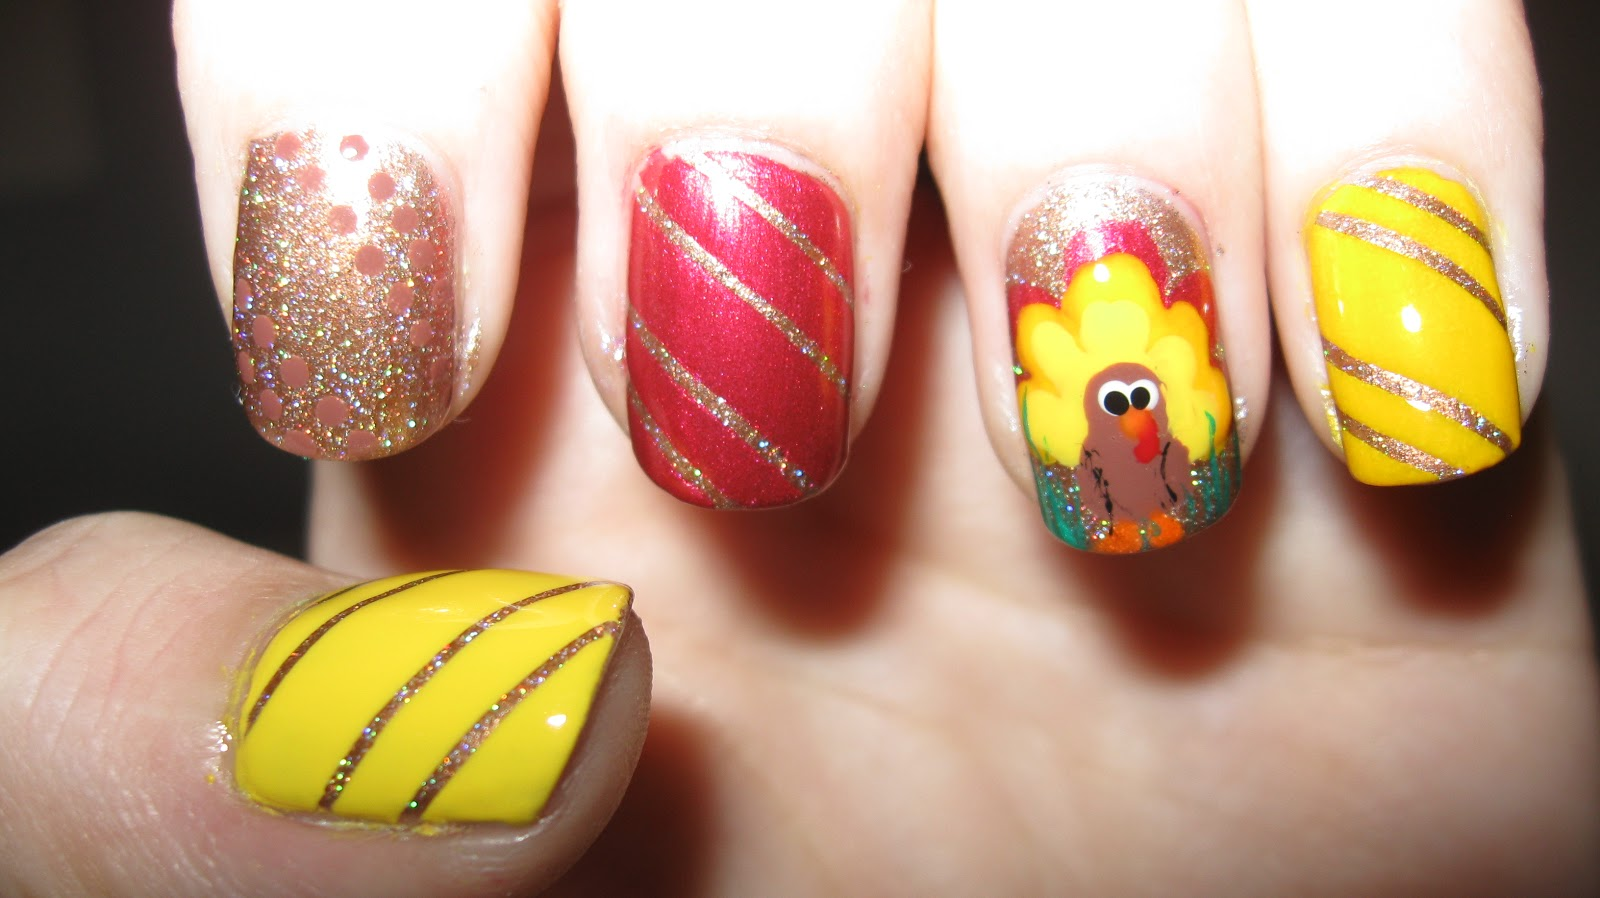 Fanning the Fumes - A Nail Art Blog: Happy Thanksgiving!